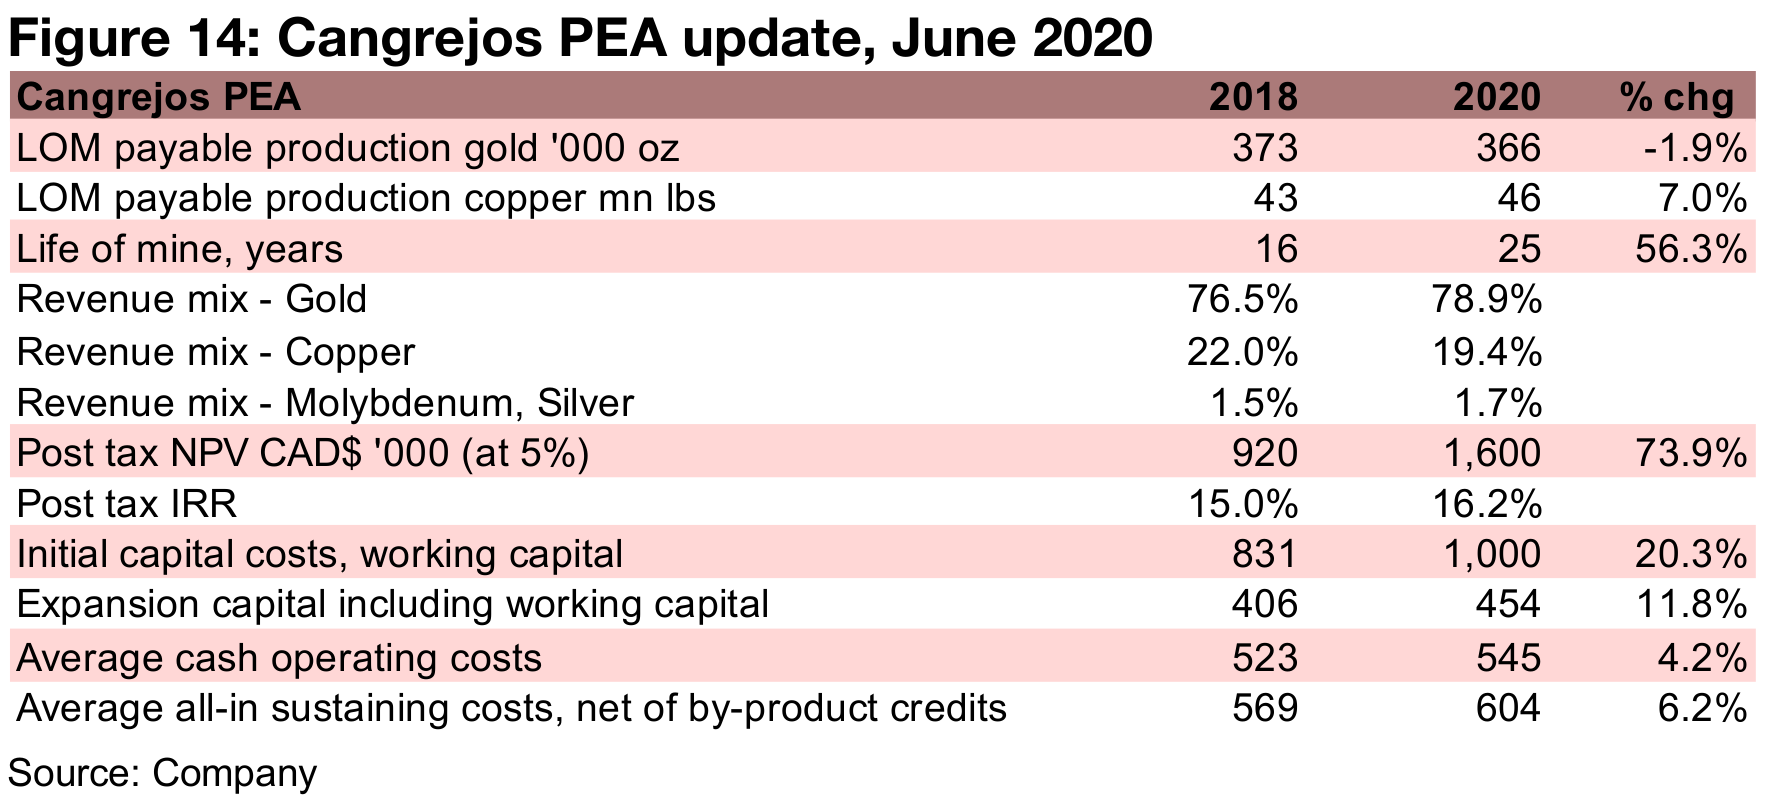 A pullback in June after updated Cangrejos PEA